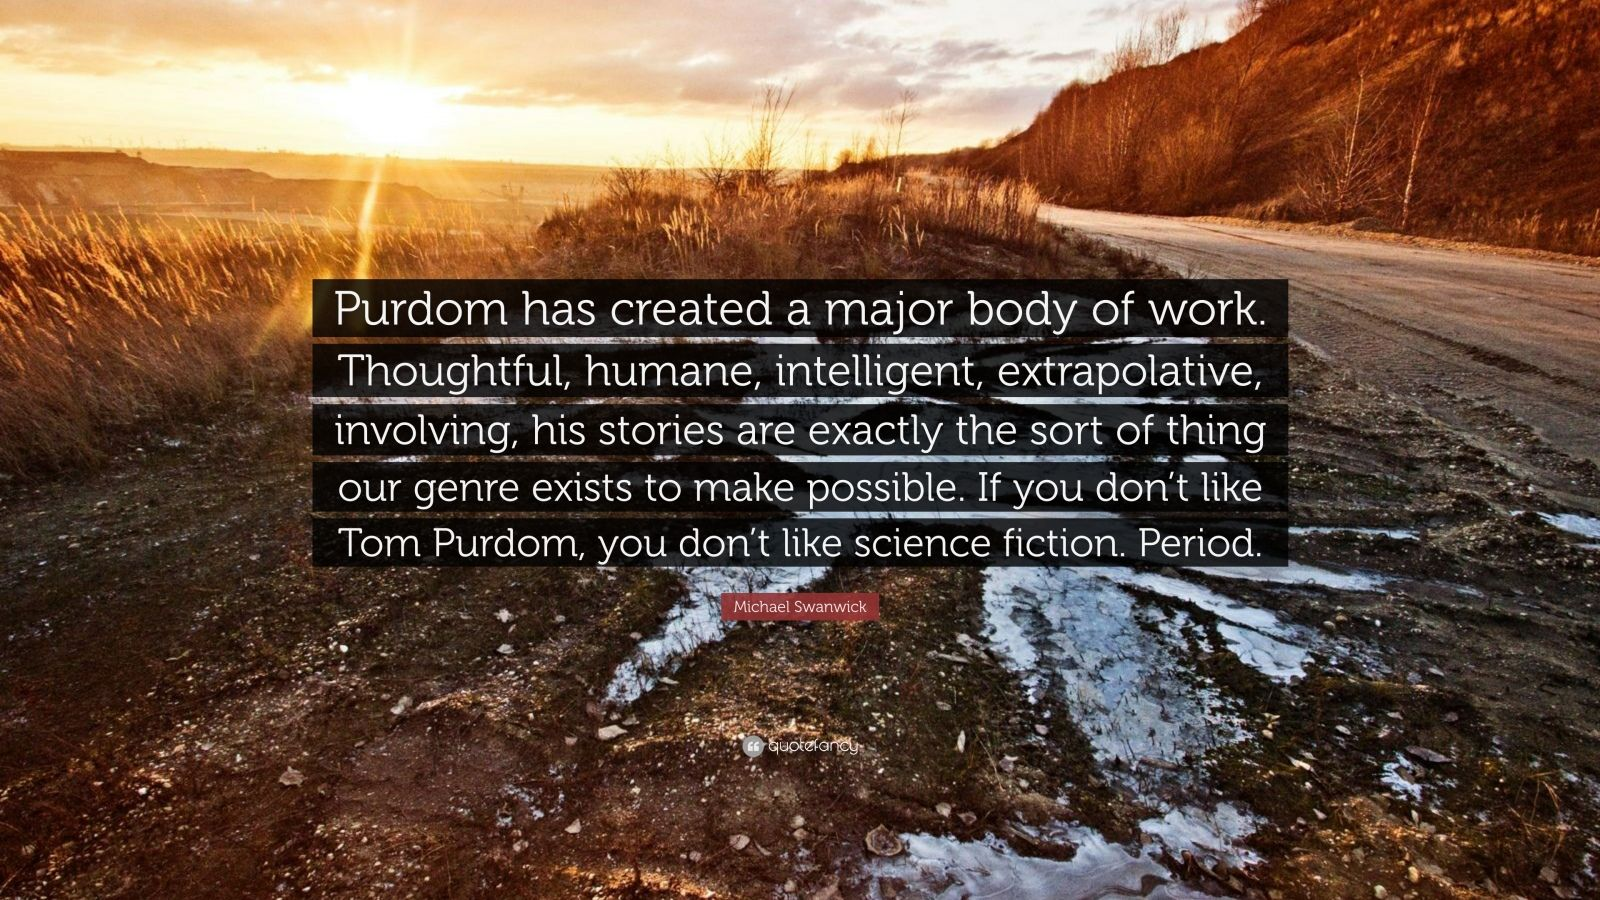 """Michael Swanwick Quote: """"Purdom has created a major body of work. Thoughtful, humane, intelligent, extrapolative, involving, his stories are exactly the sort of thing our genre exists to make possible. If you don't like Tom Purdom, you don't like science fiction. Period."""""""